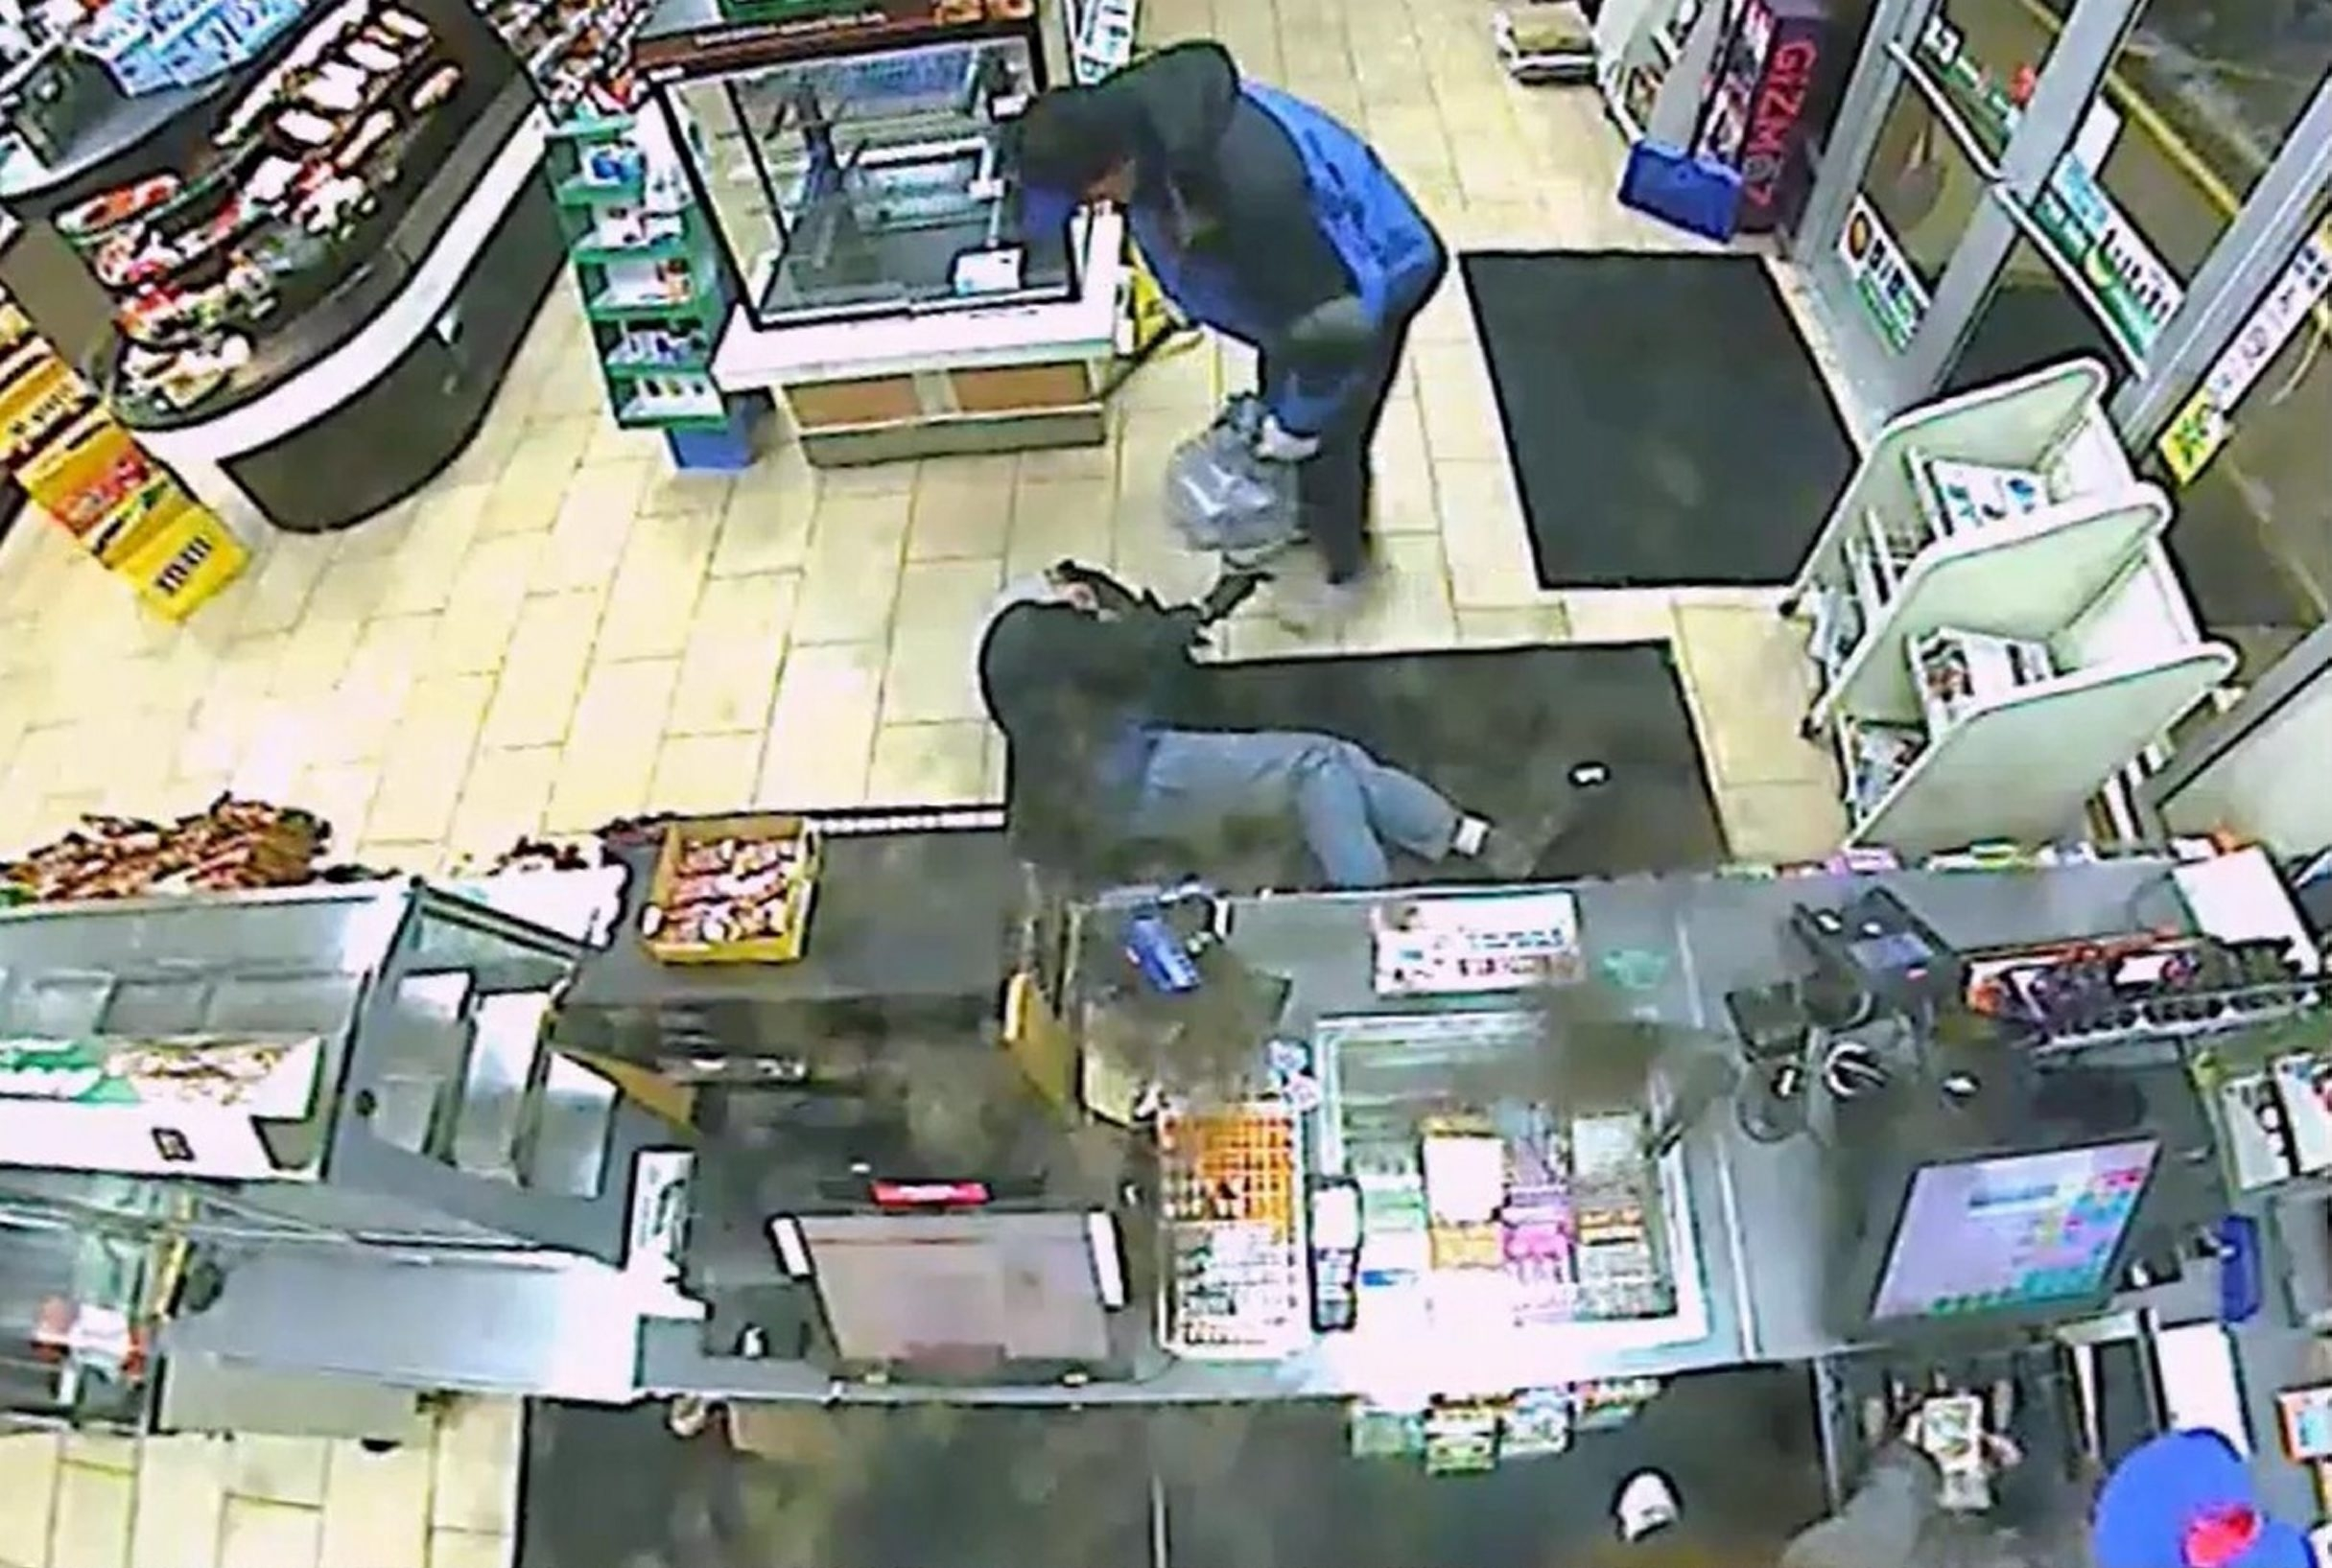 A screen shot from a video released by police of an attempted robbery Tuesday at a Town of Tonawanda convenience store.